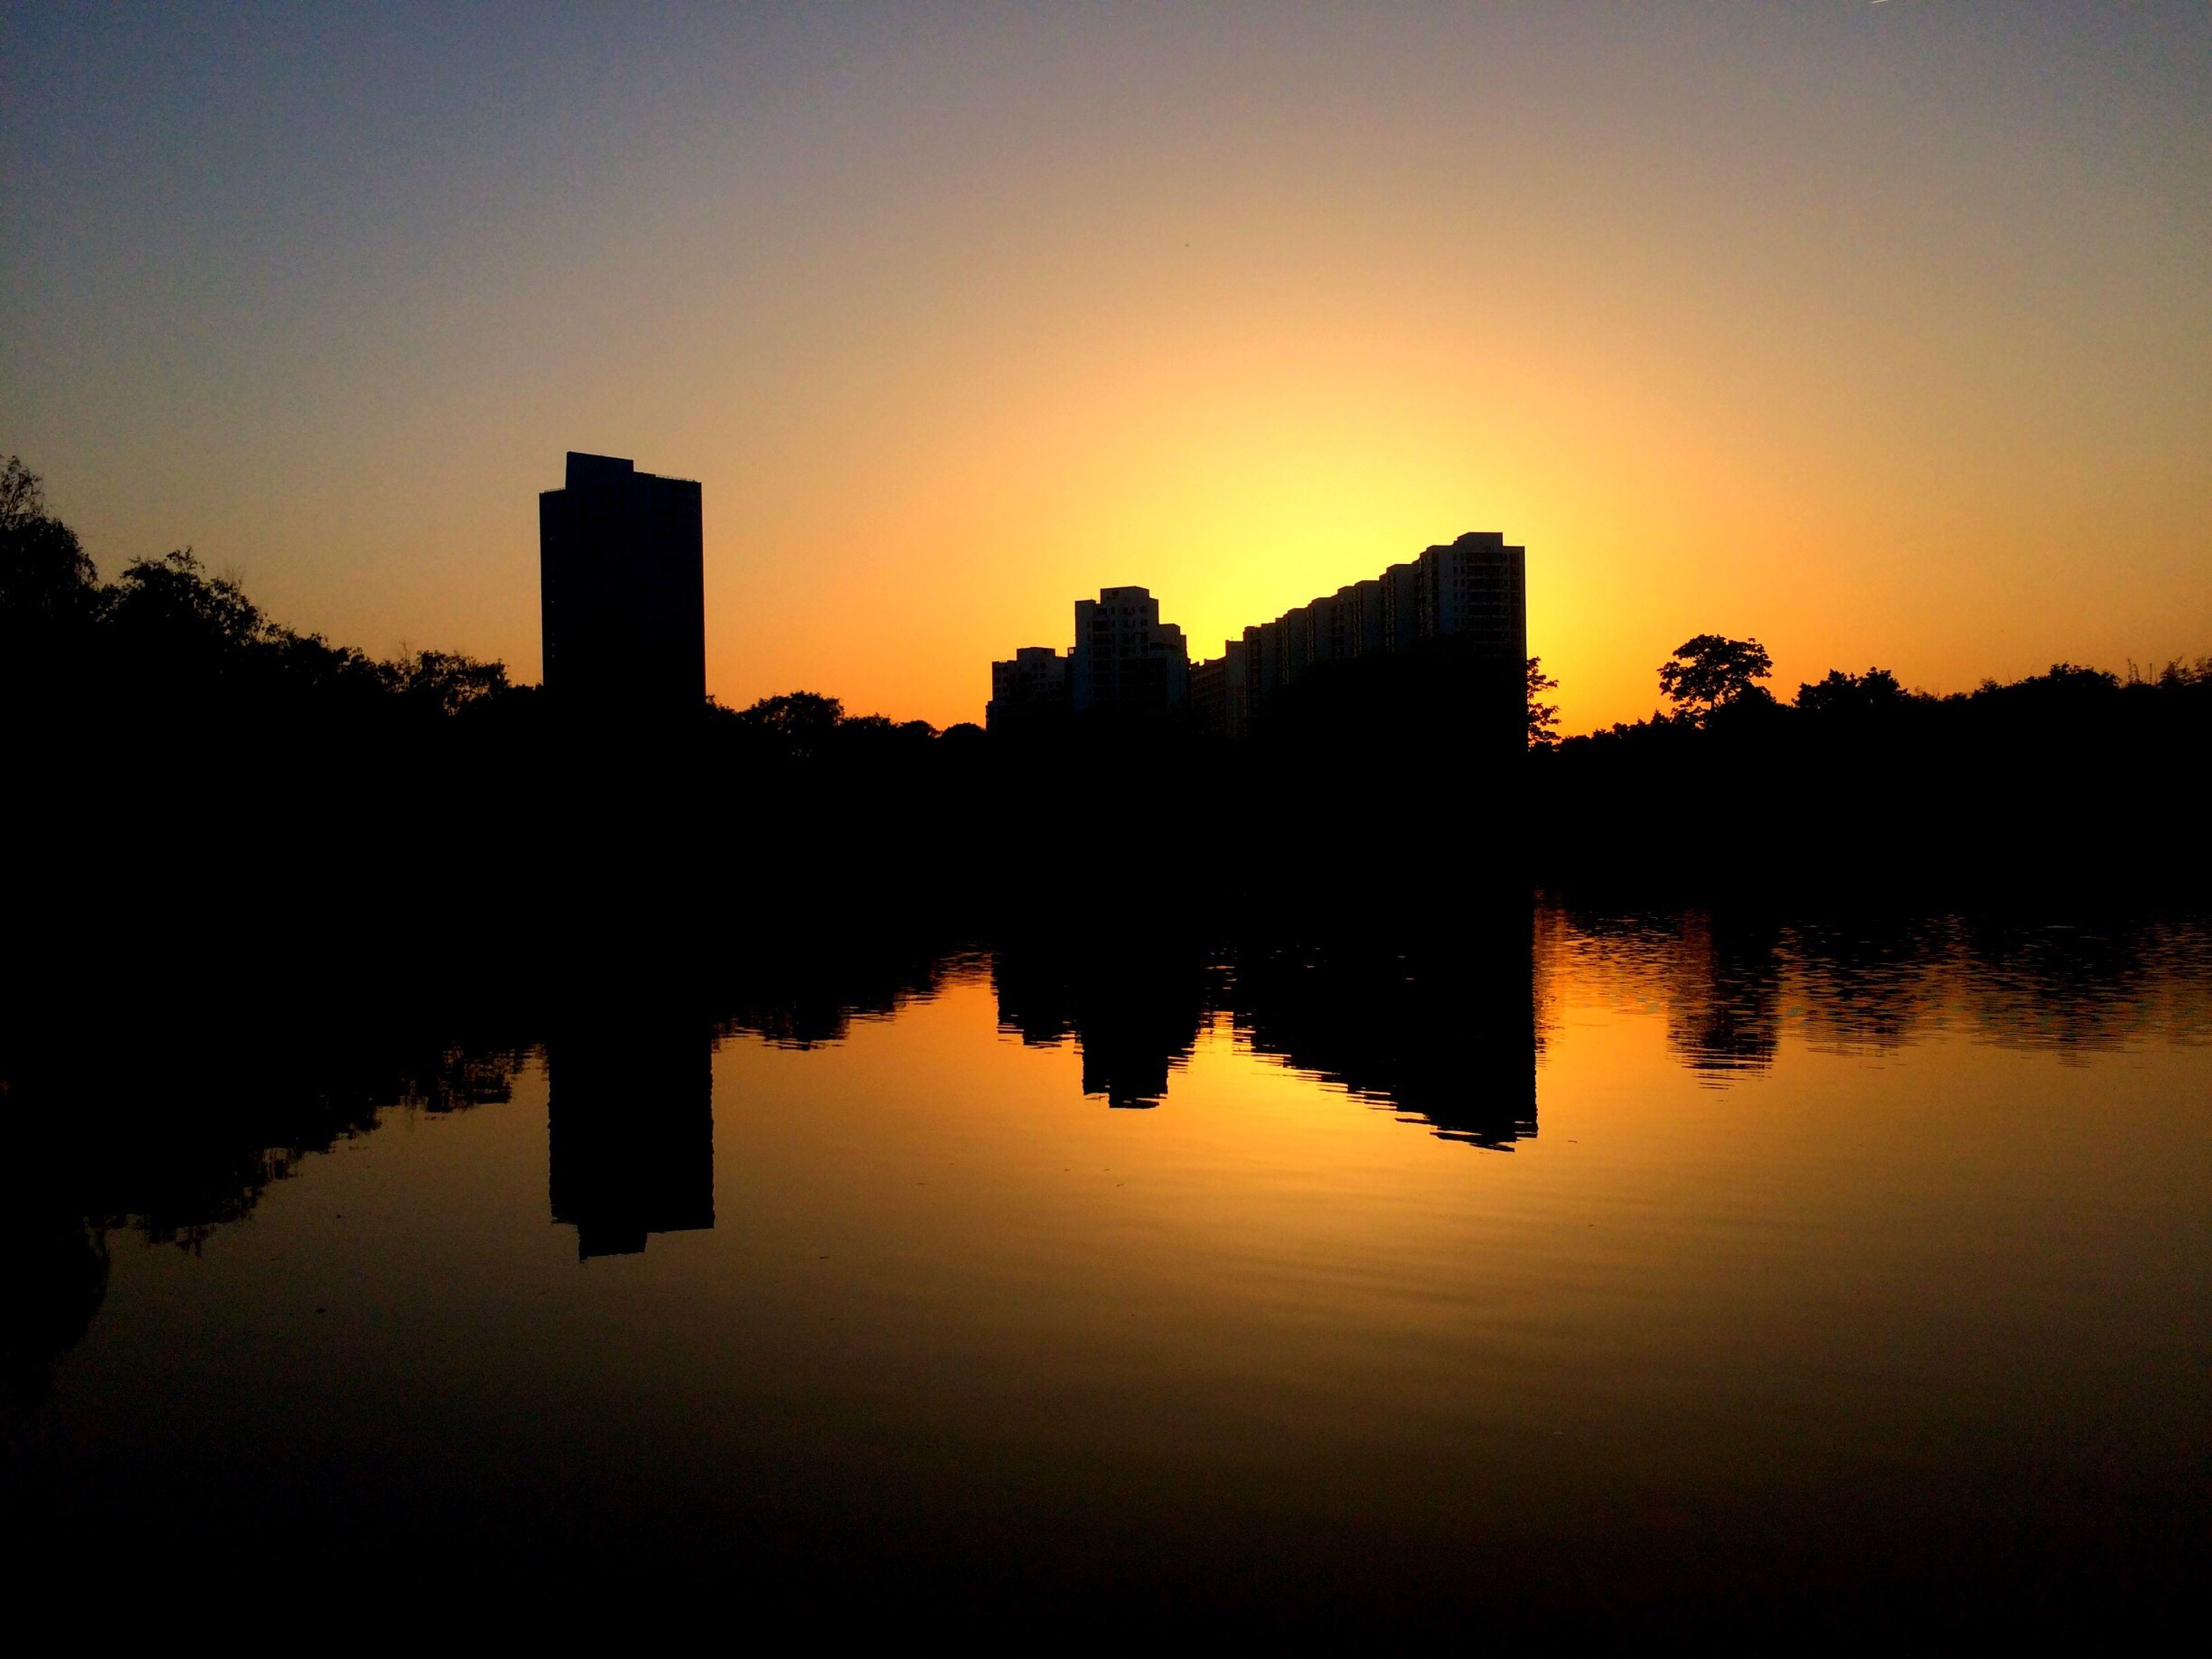 reflection, sunset, silhouette, architecture, water, built structure, building exterior, waterfront, sky, no people, tree, lake, clear sky, outdoors, symmetry, nature, beauty in nature, city